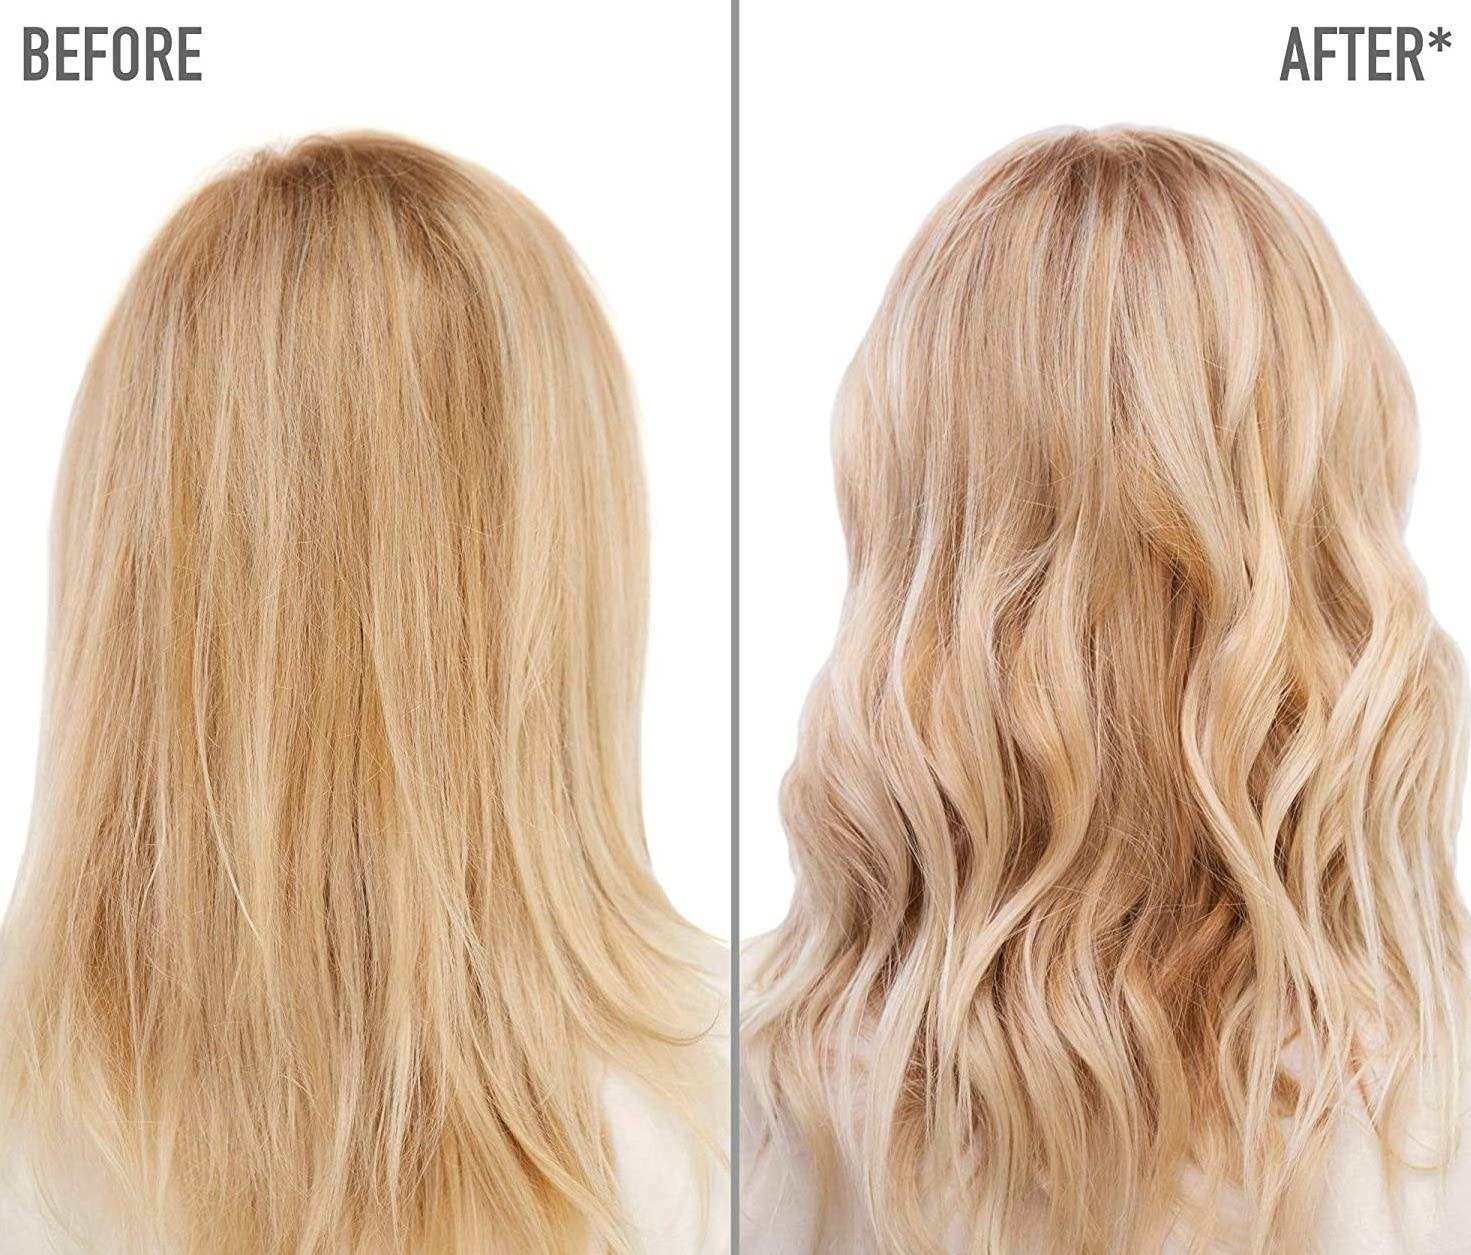 Model showing before-and-after results of using MATRIX Total Results So Silver Color Depositing Purple Shampoo